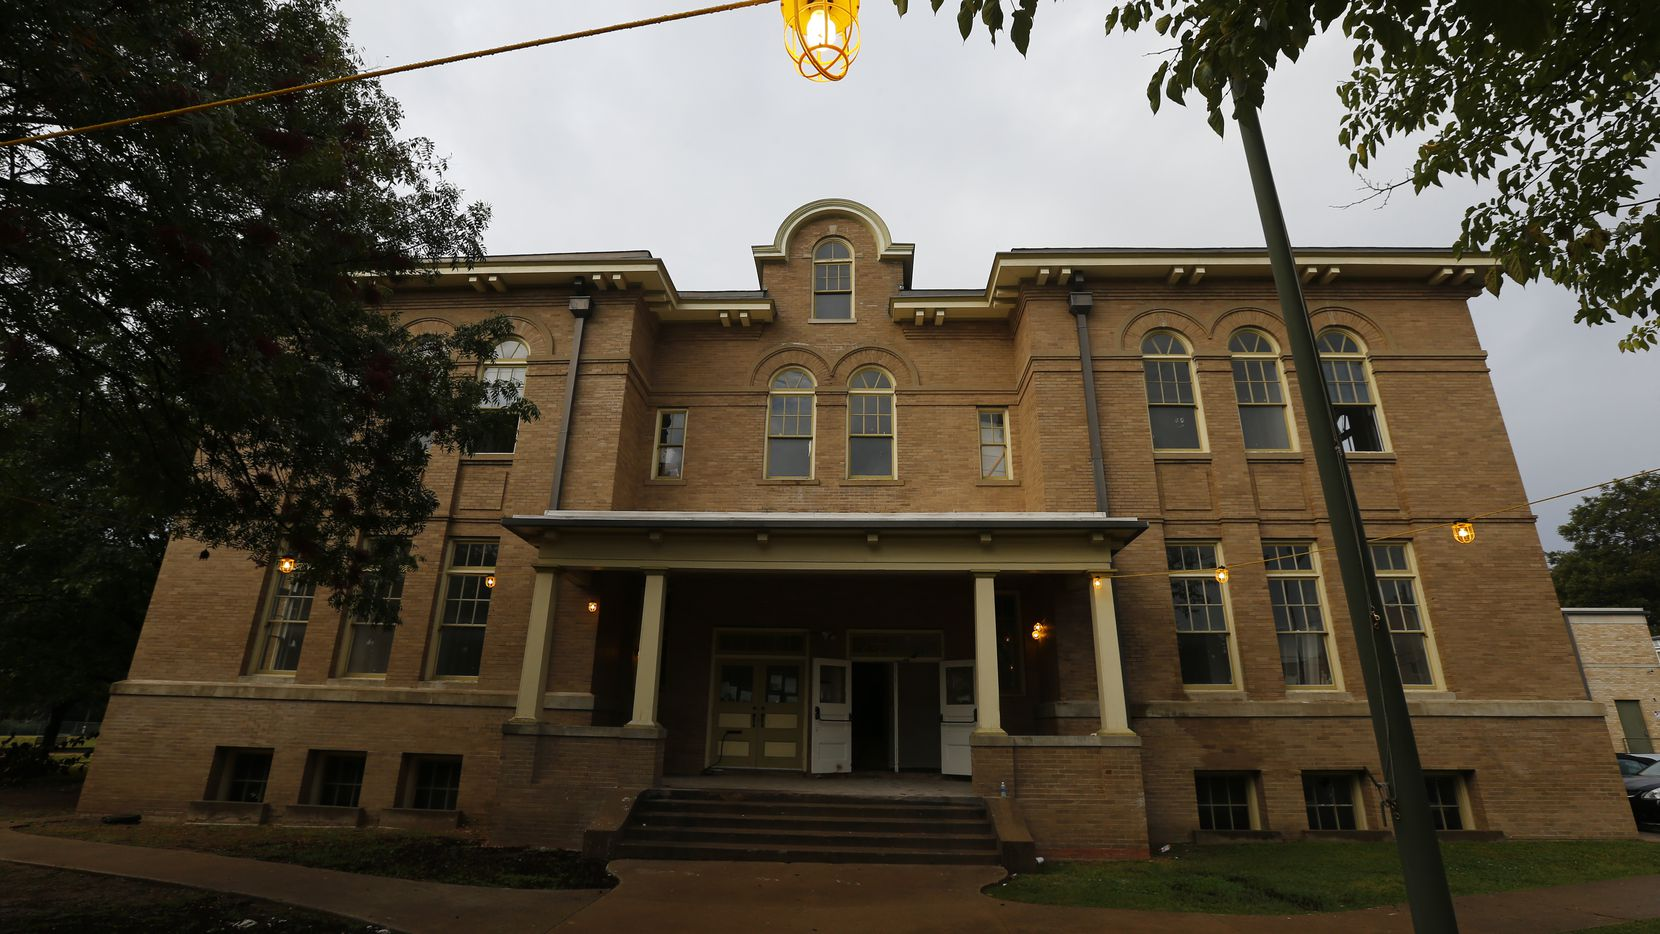 The old Davy Crockett School is being converted into in apartments in Dallas.